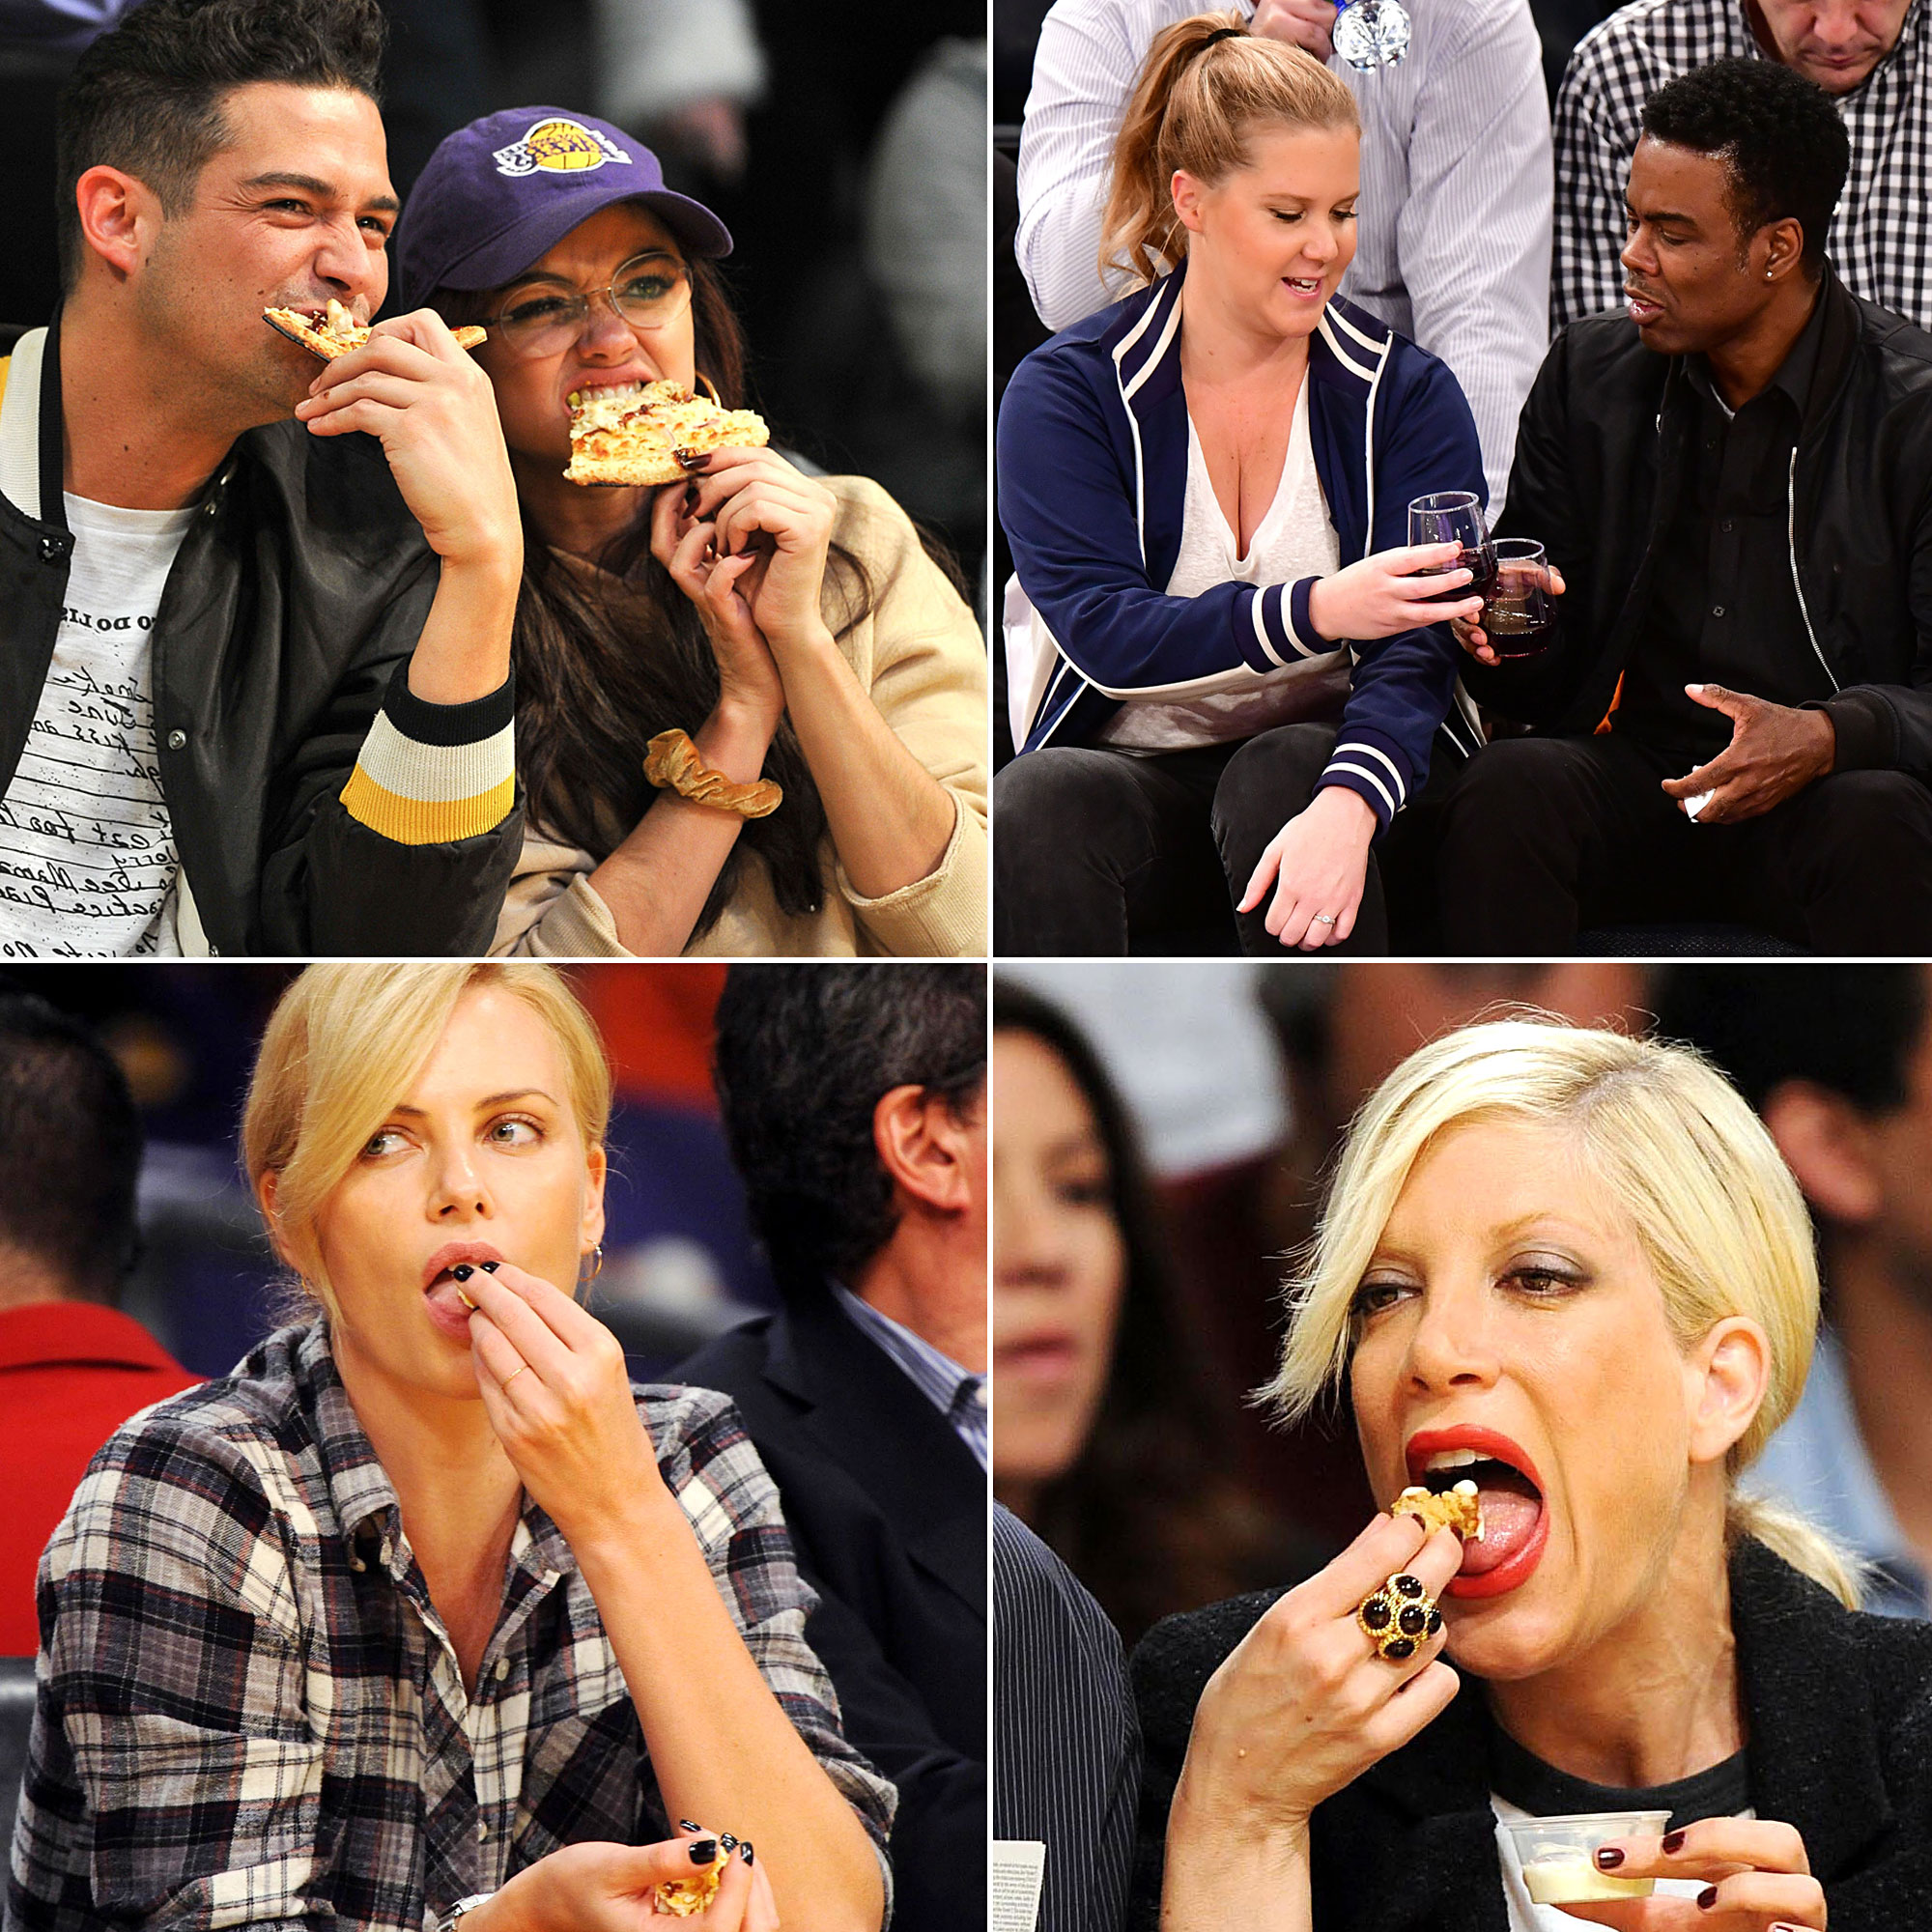 Celebs Eating Courtside - Snacking courtside is an art form. While some stars don't seem to mind if photographers snap away while they're feasting on concession treats, others (likely aware that there are cameras on them) pick skillfully at their food.